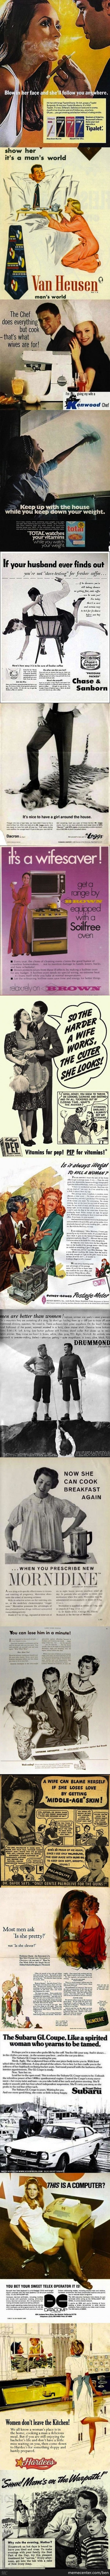 18 Sexist Vintage Ads